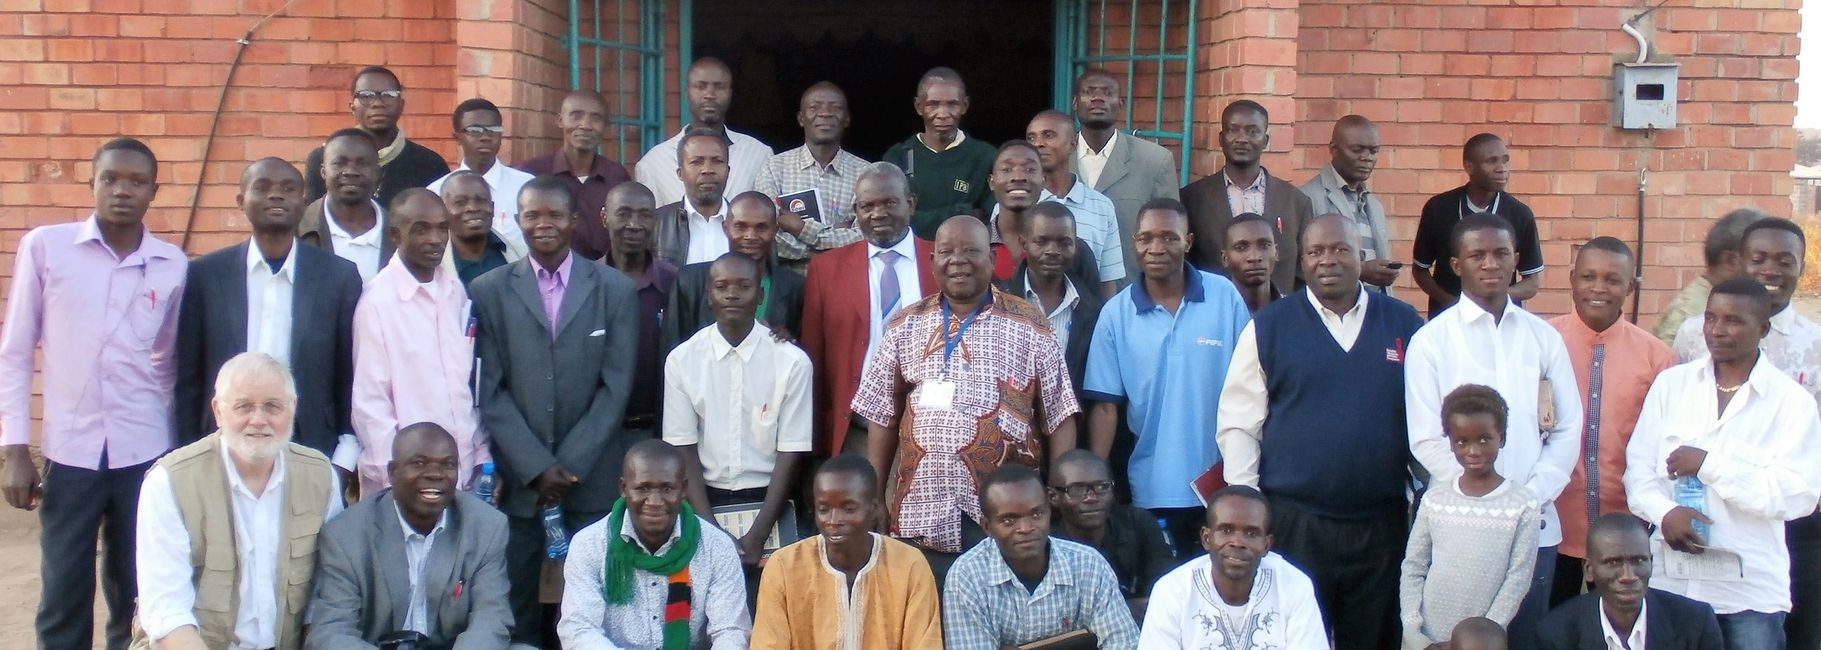 Steve conducts pastoral training conferences in Zambia